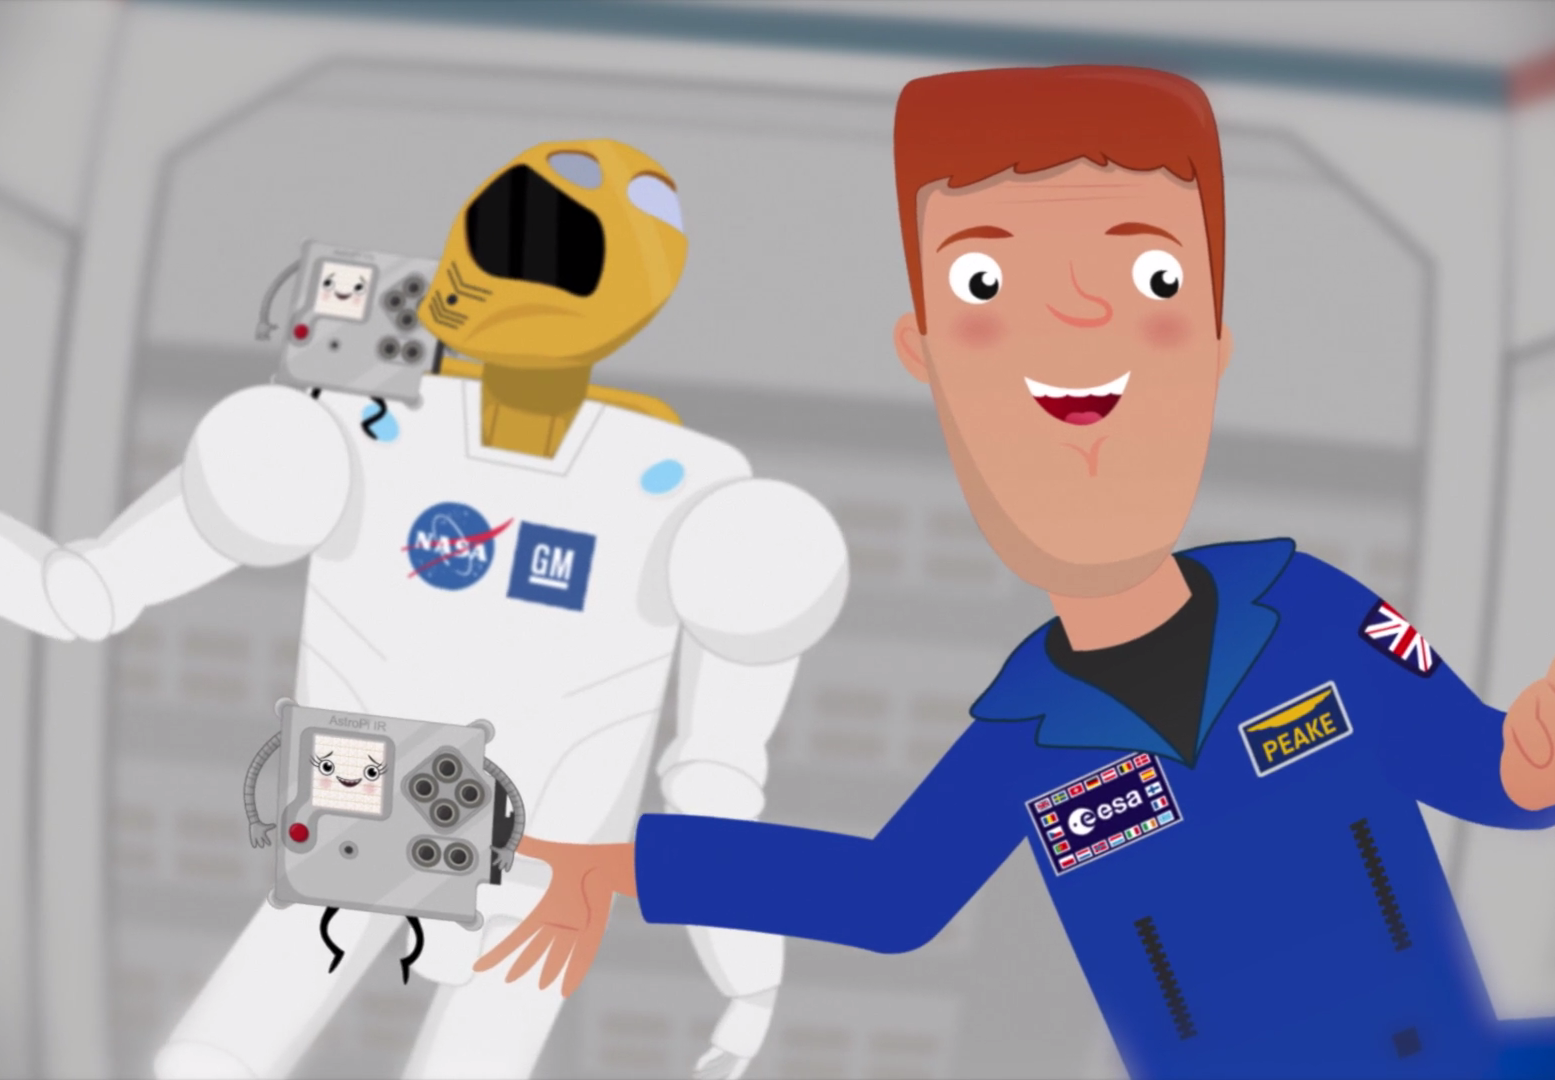 Astro Pi: the animated adventures of Izzy and Ed